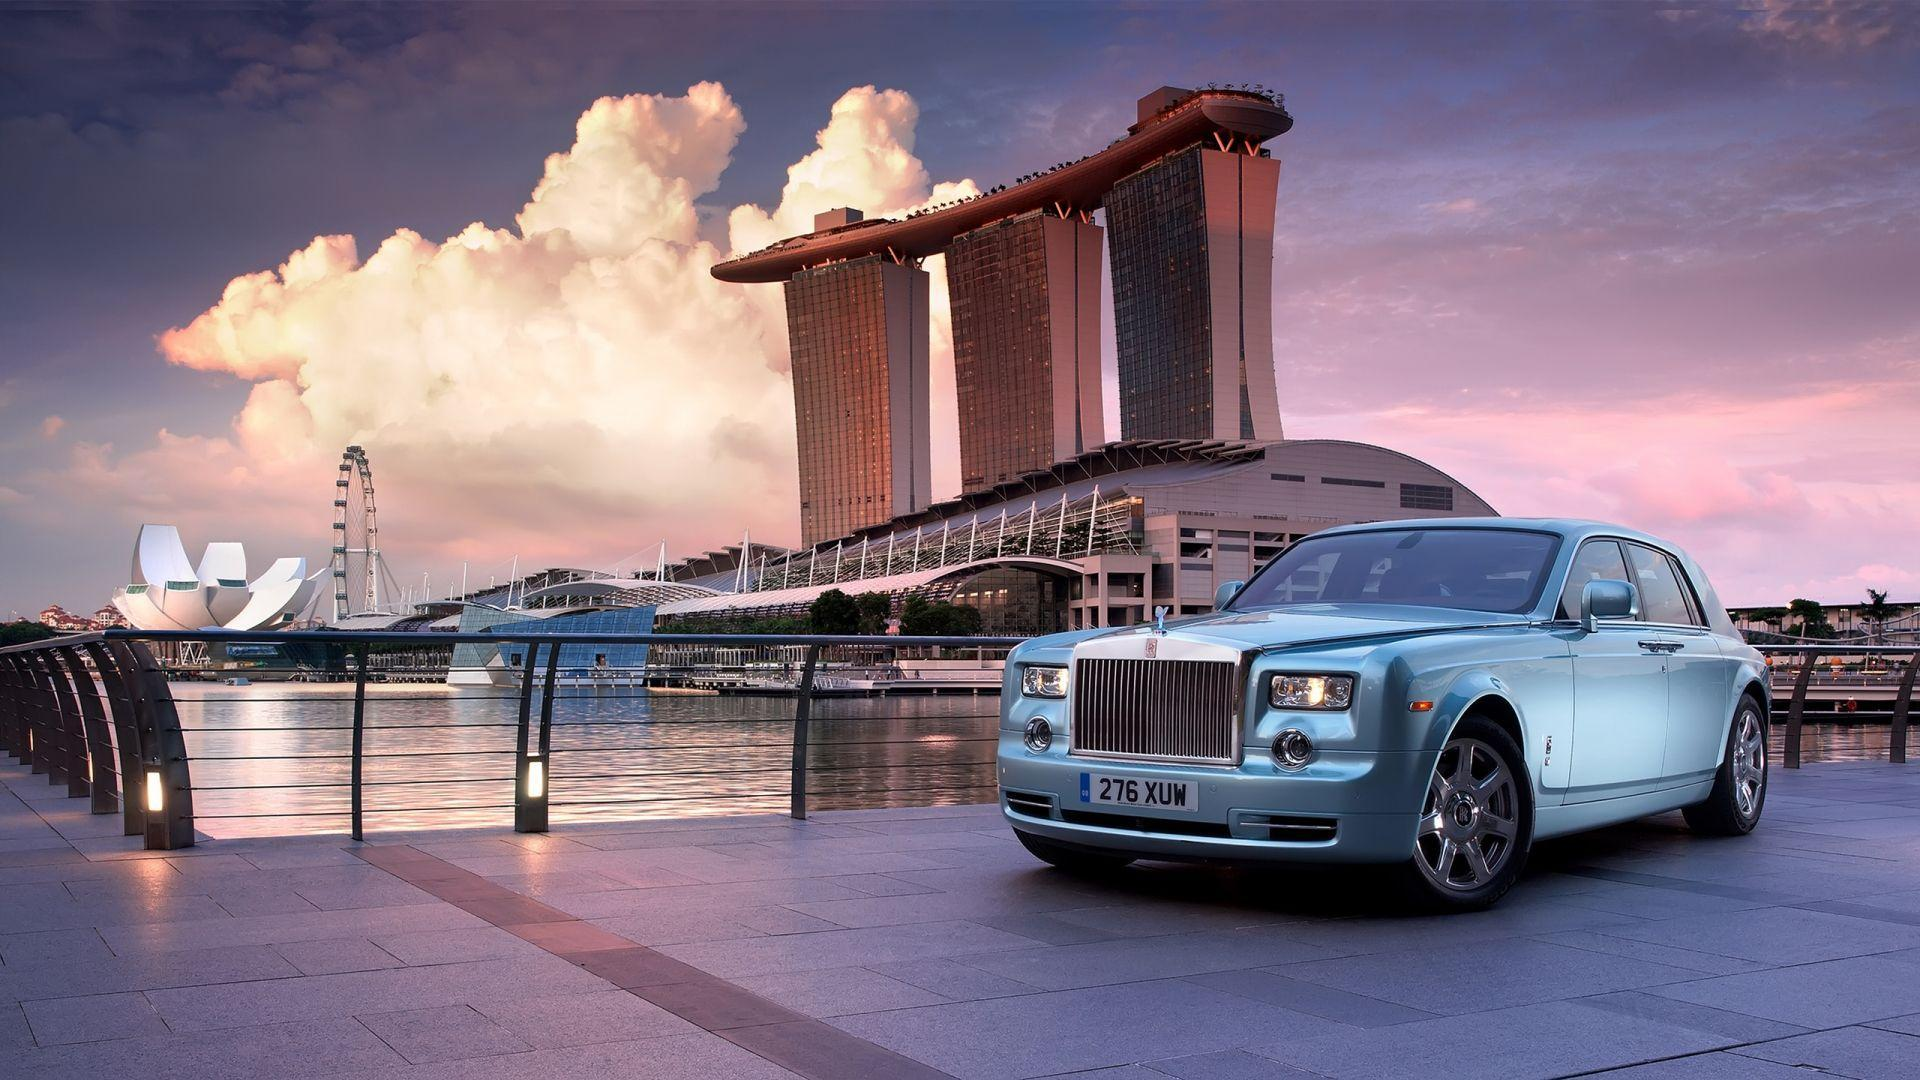 Rolls Royce Phantom Full HD Wallpapers and Backgrounds Image